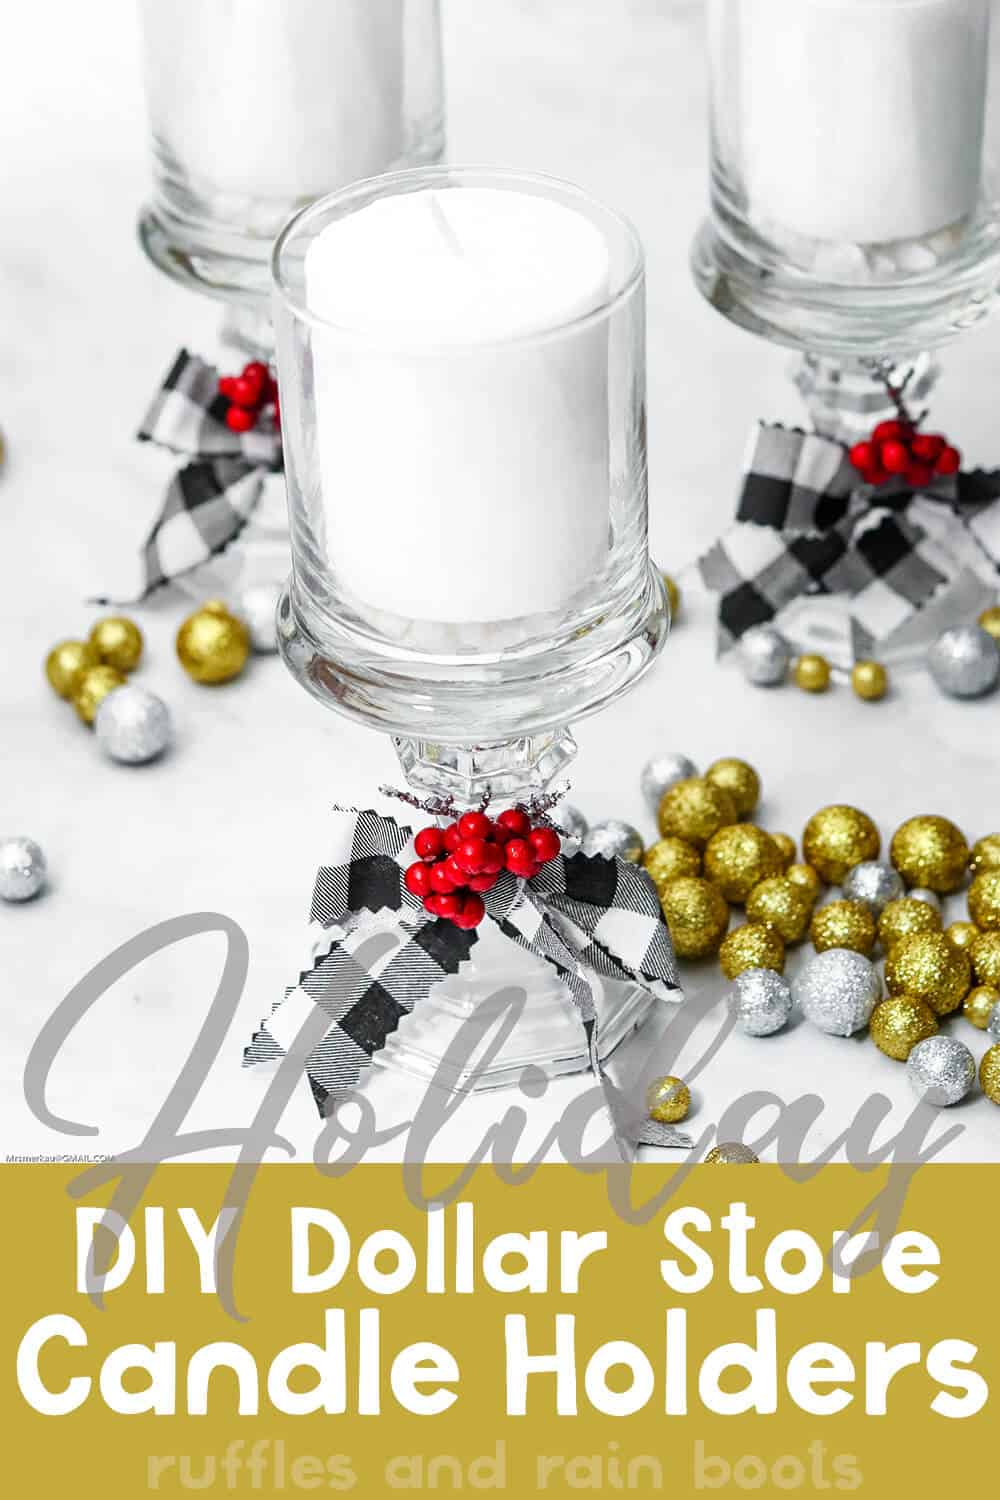 Easy Diy Dollar Store Candle Holder Upcycle Craft